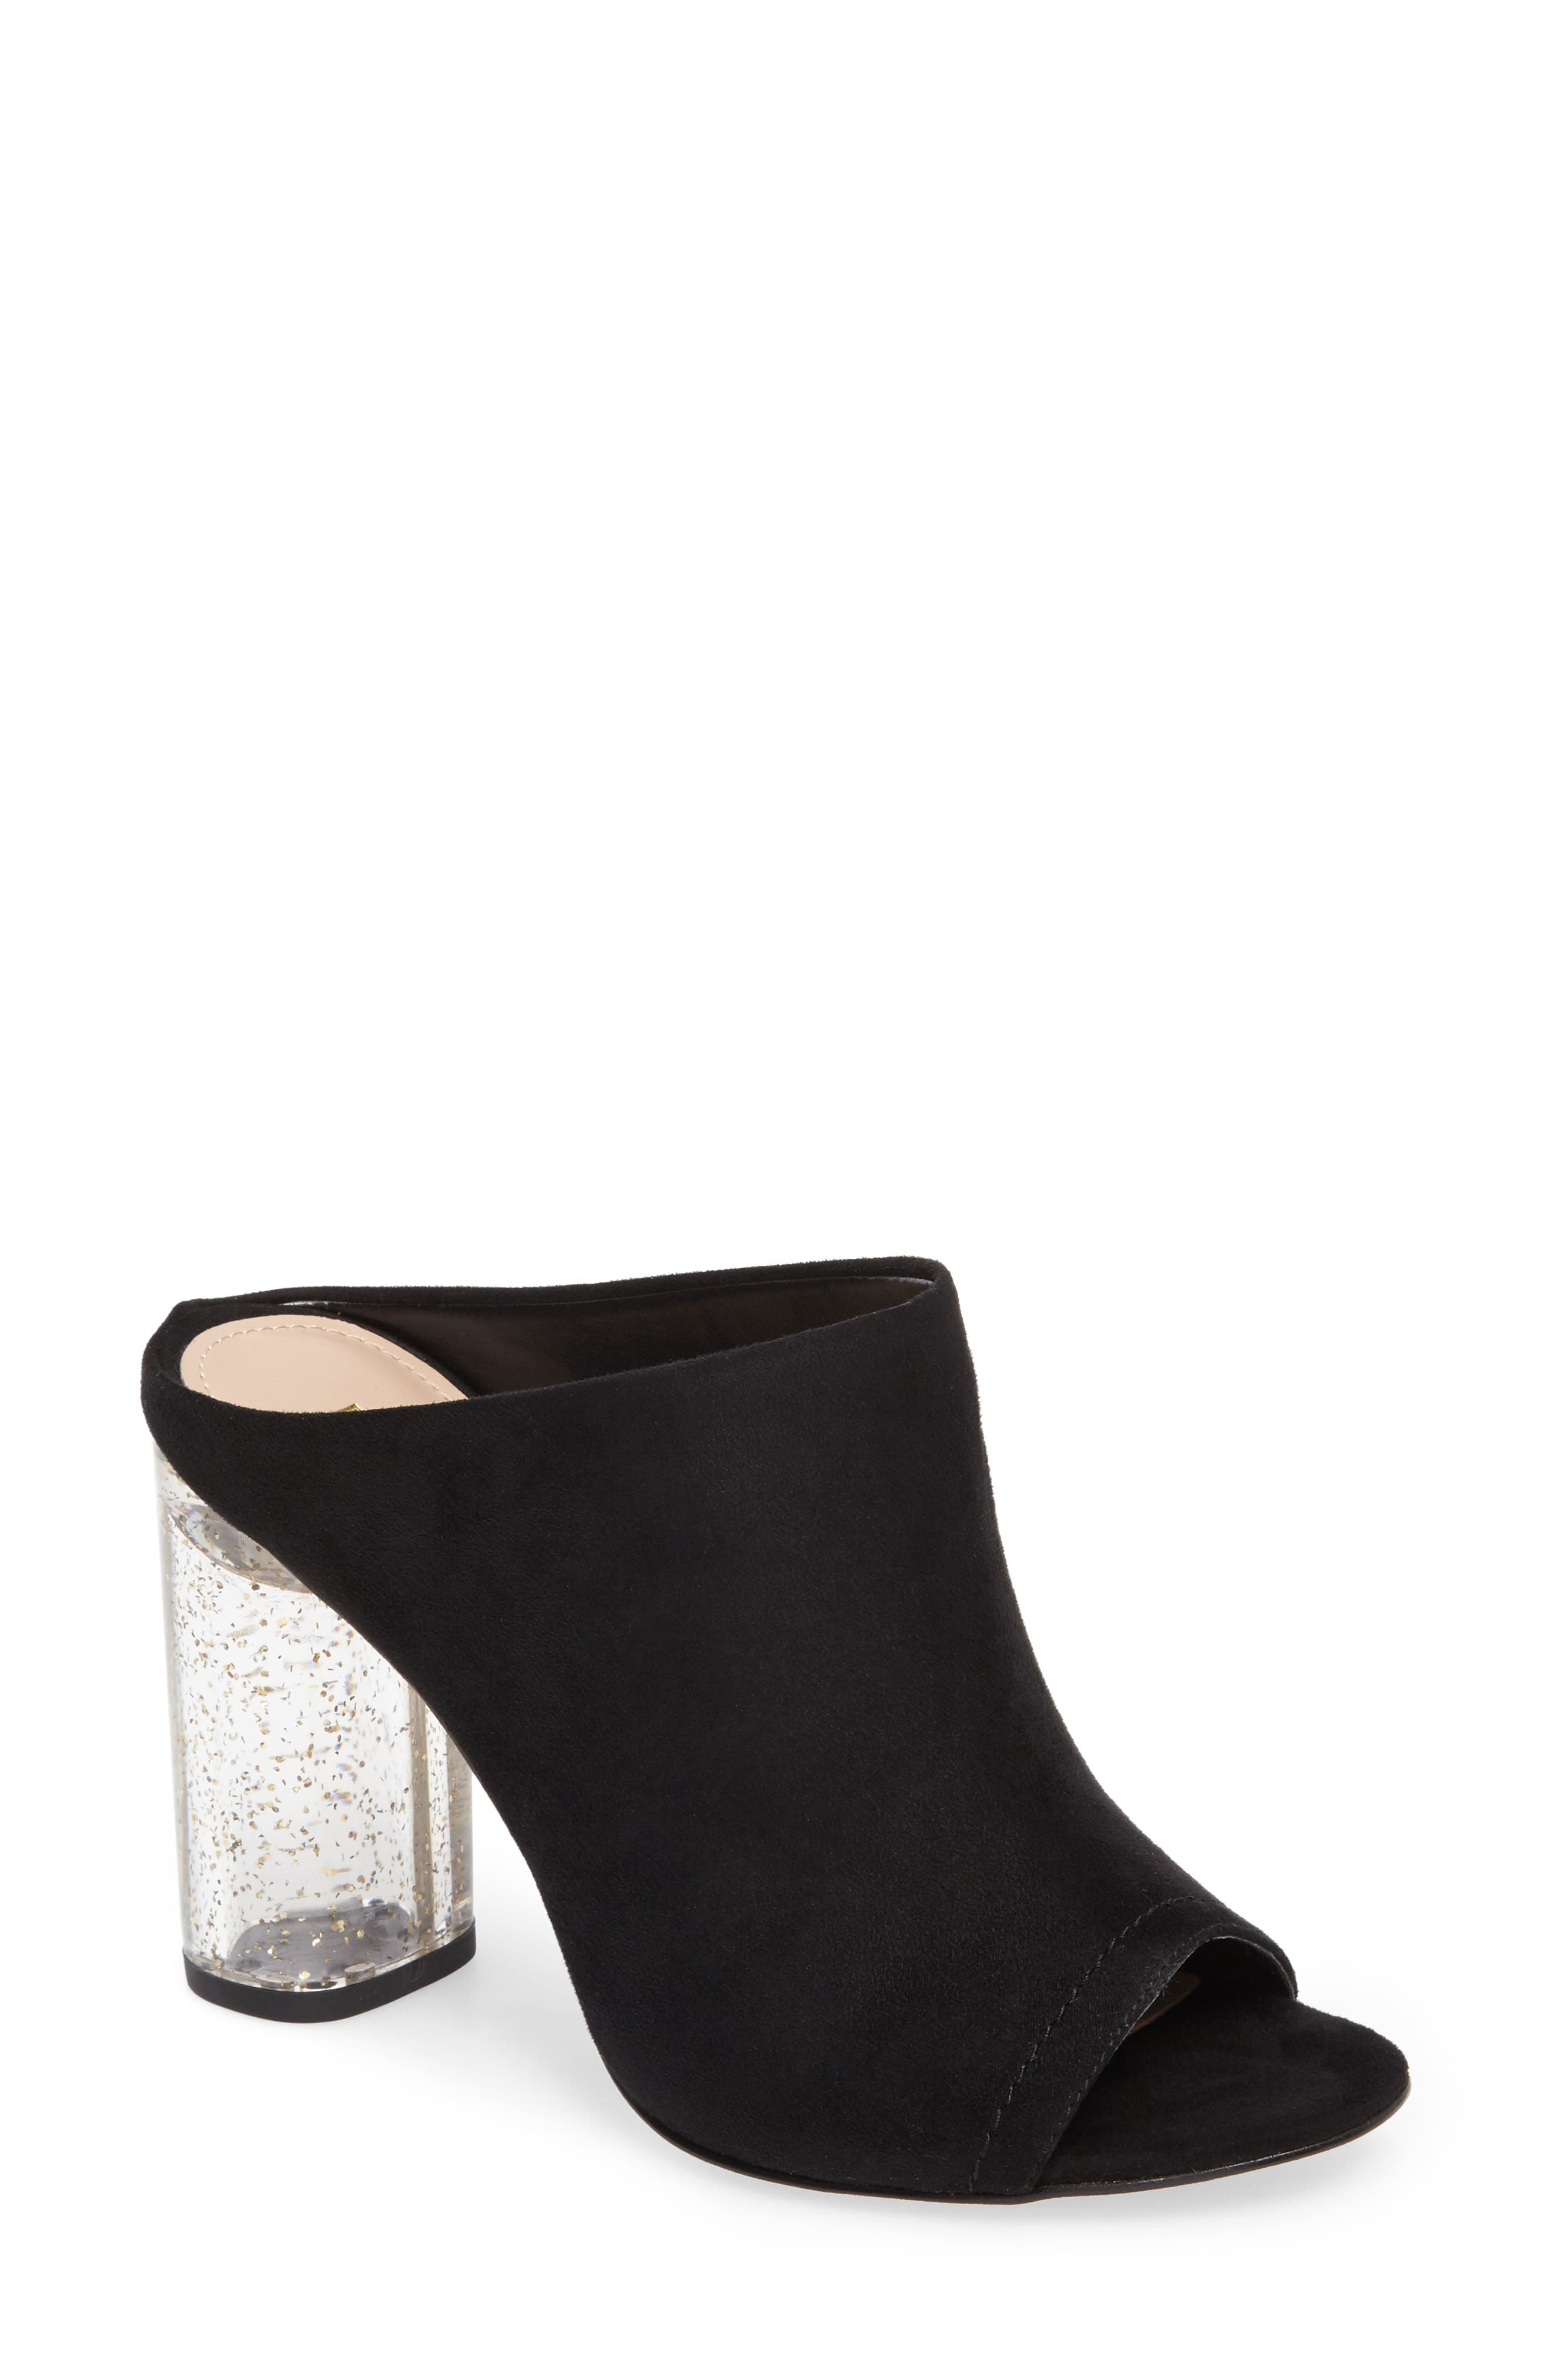 Renee Block Heel Mule,                         Main,                         color, 001